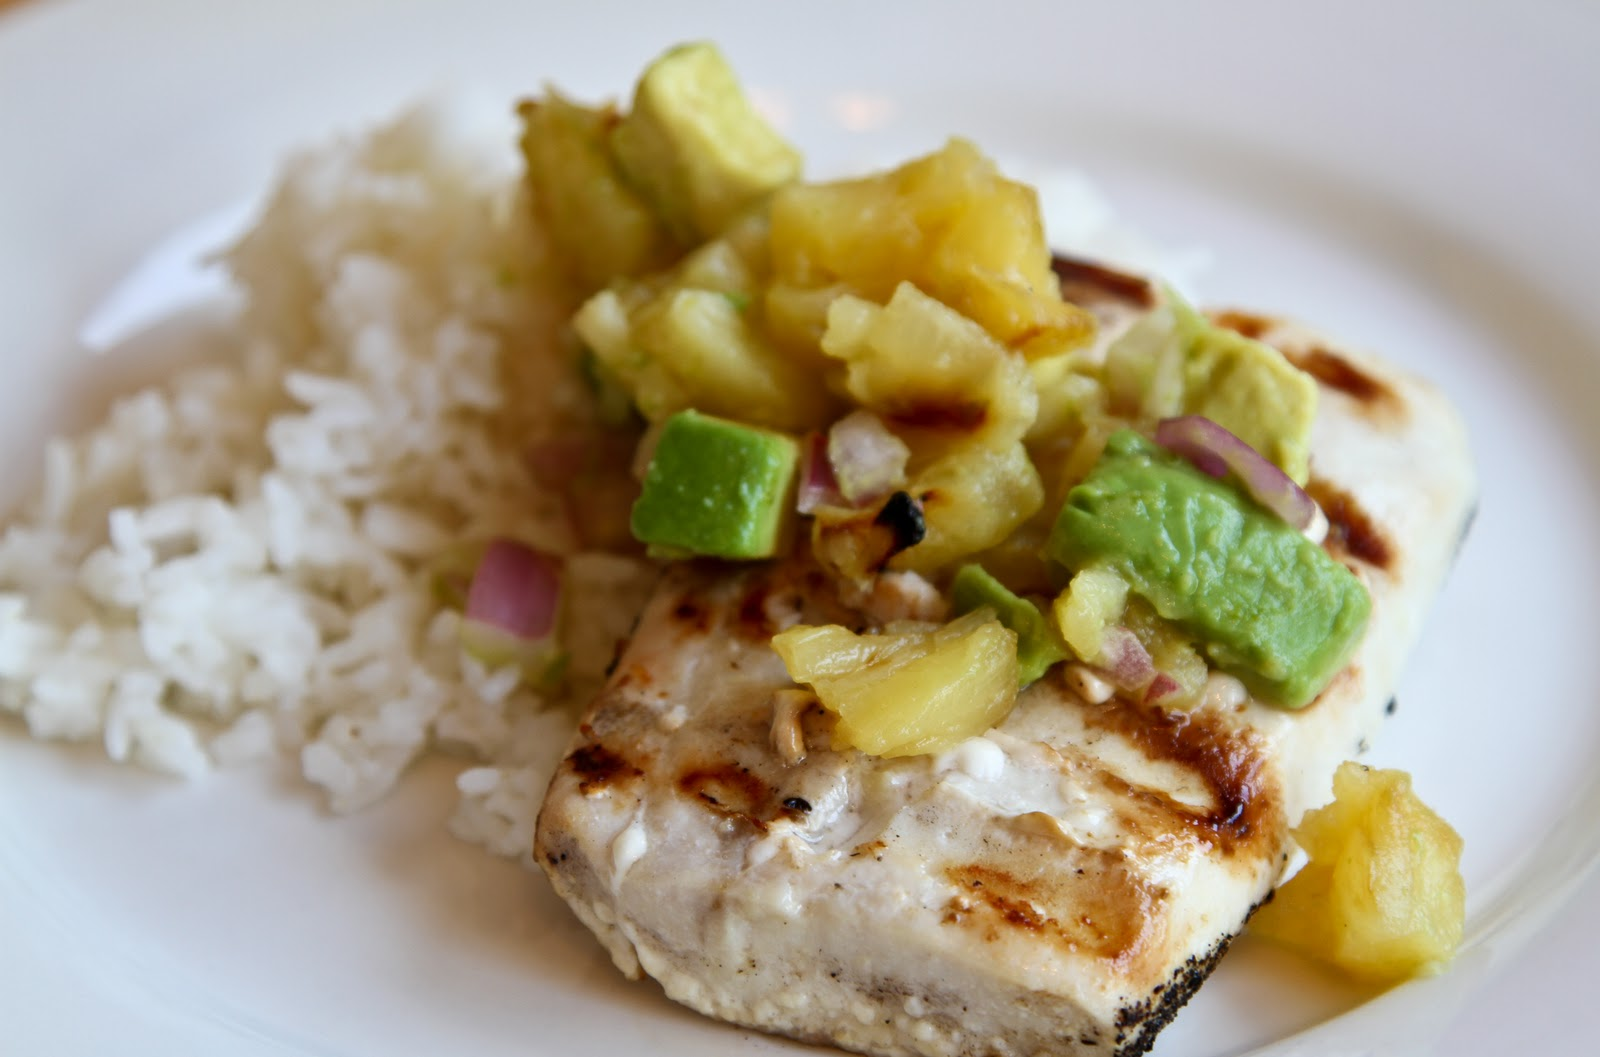 Suburban Spoon: Grilled Mahi Mahi with Pineapple and Avocado